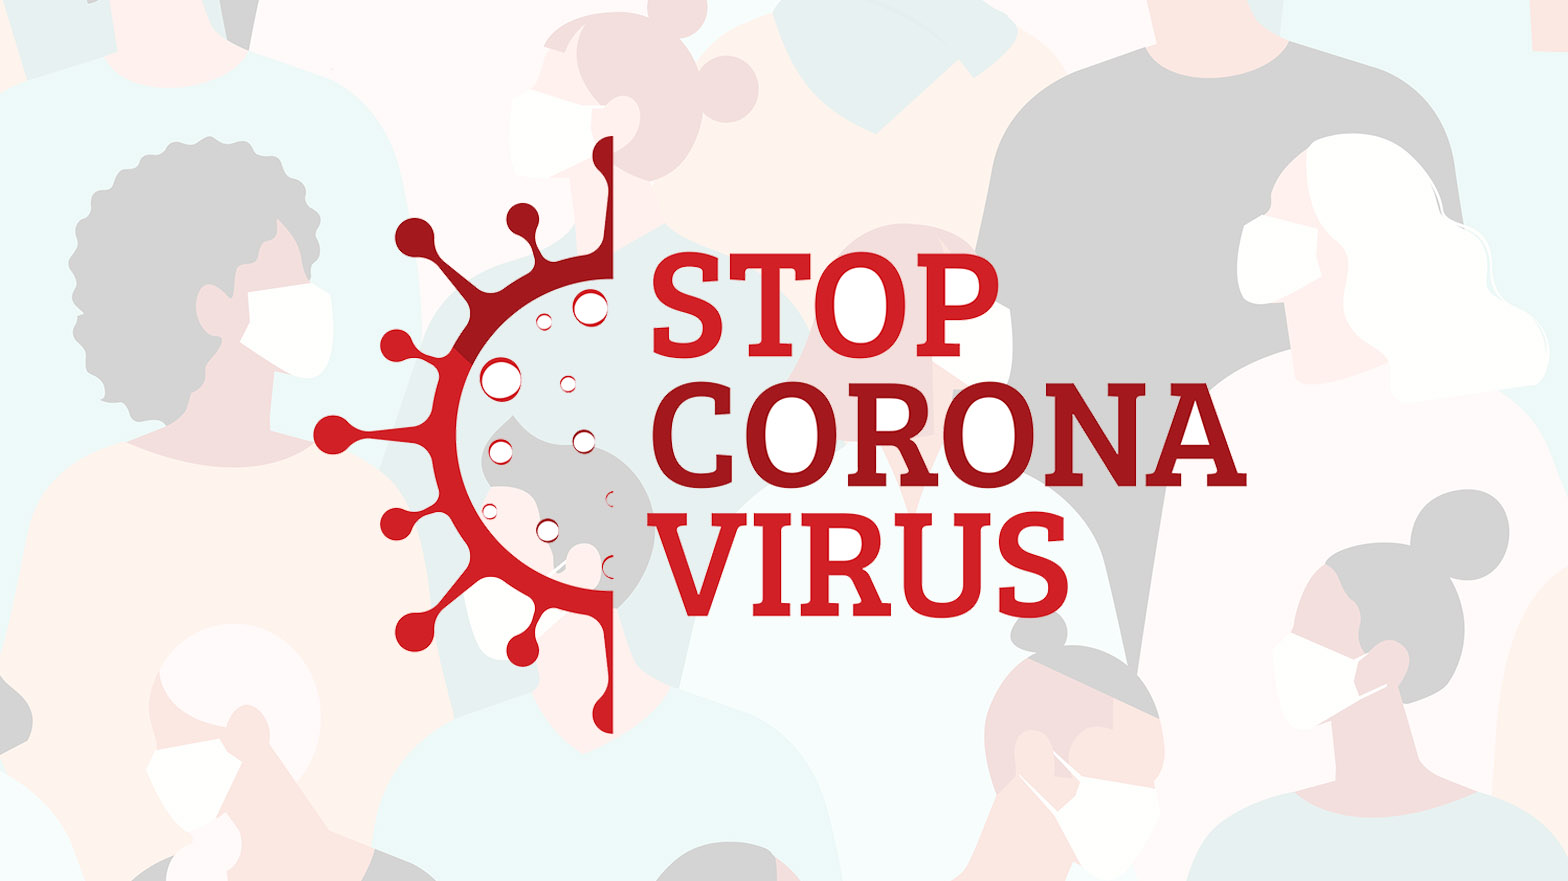 Let's Stop Corona Virus-Penn Branch